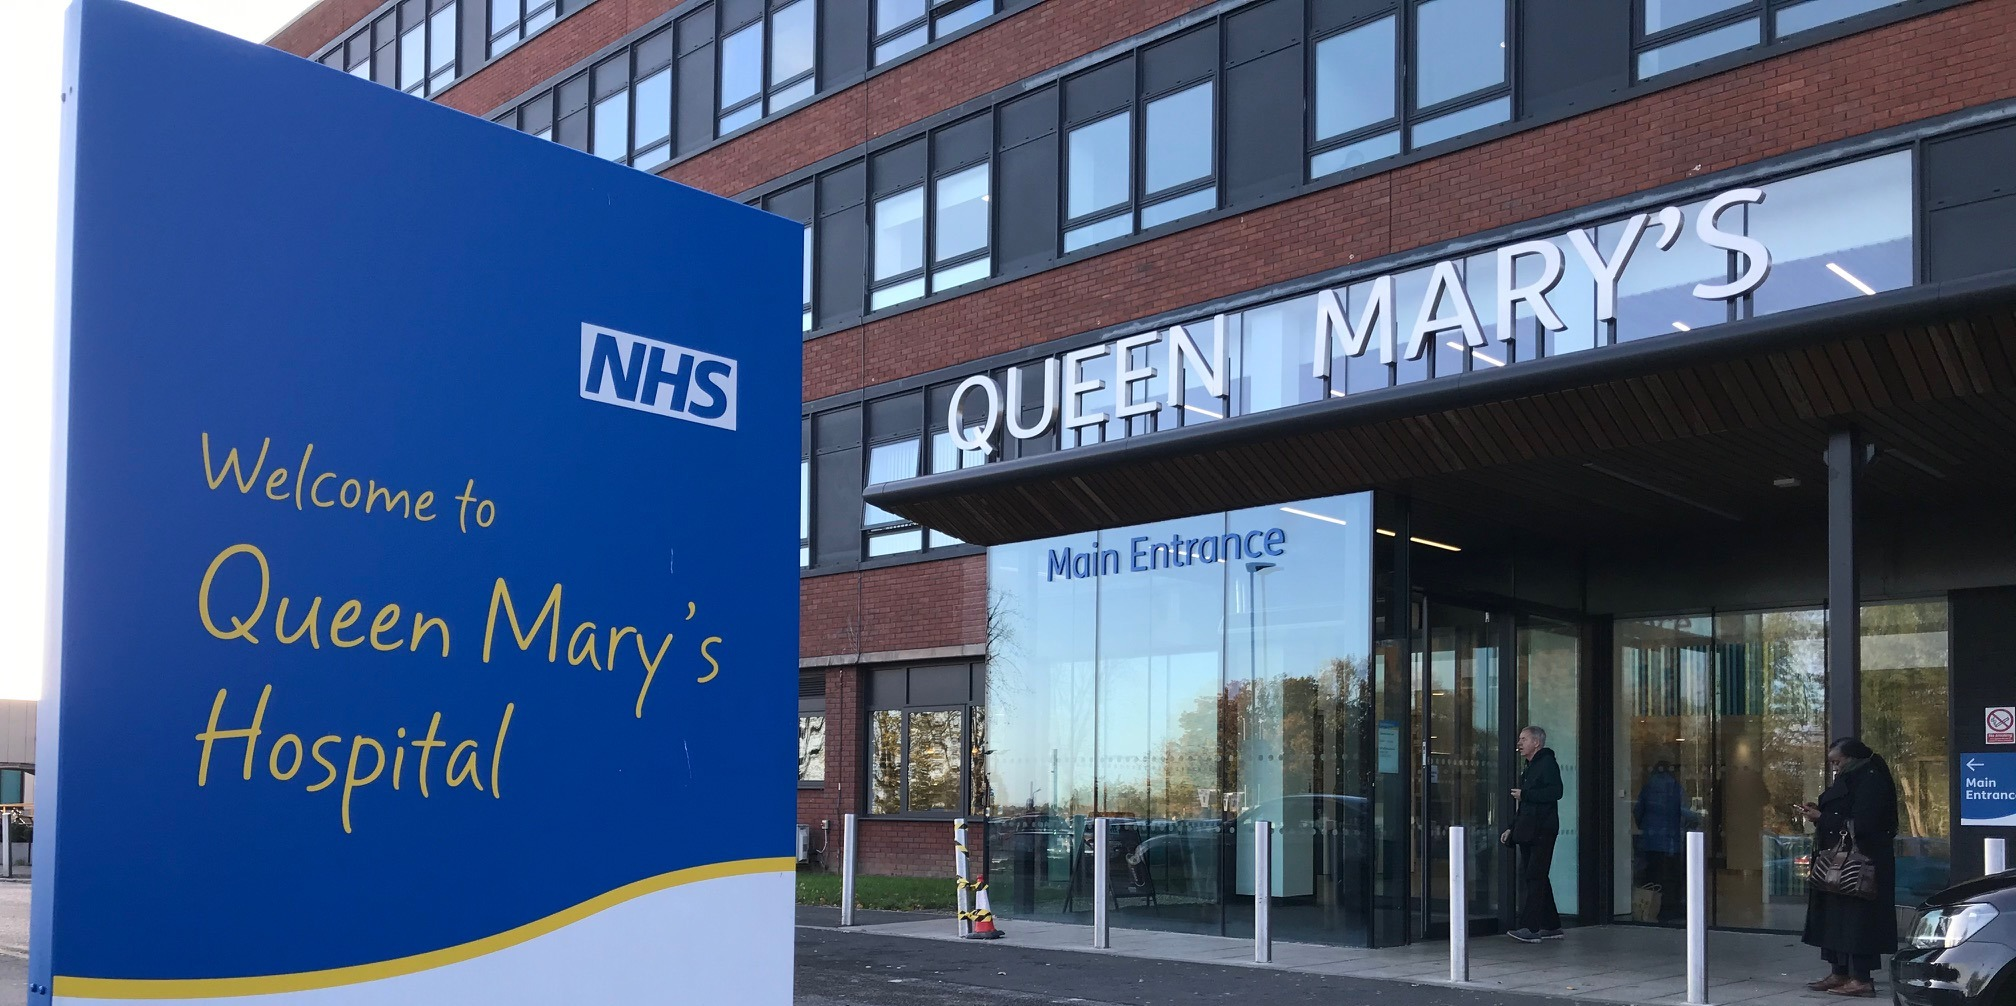 Queen Mary's Hospital